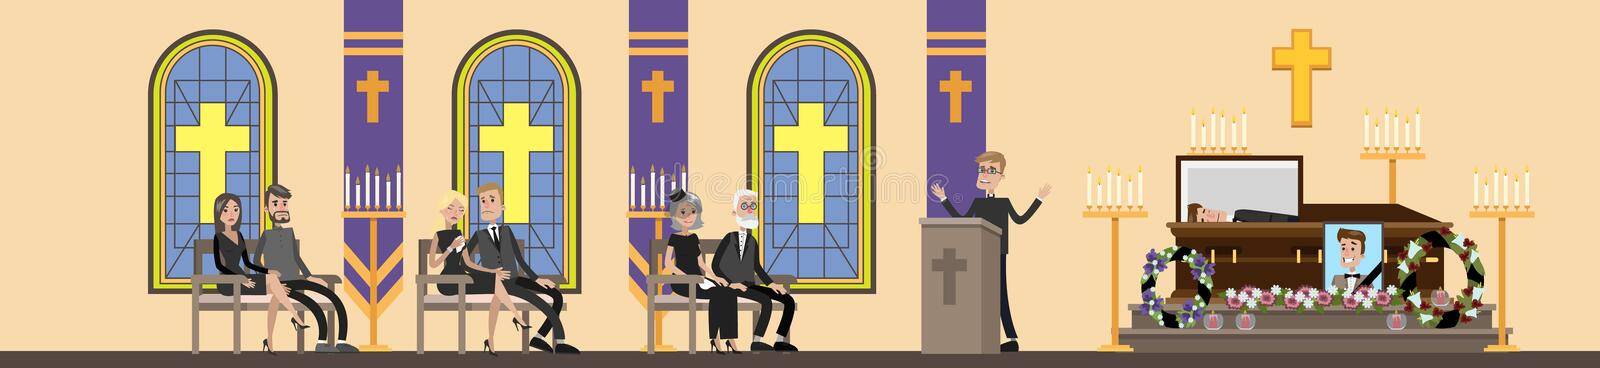 Funeral ceremony illustration. Funeral service in . People in black clothes crying at the memorial ceremony in the church . Vector flat illustration stock illustration